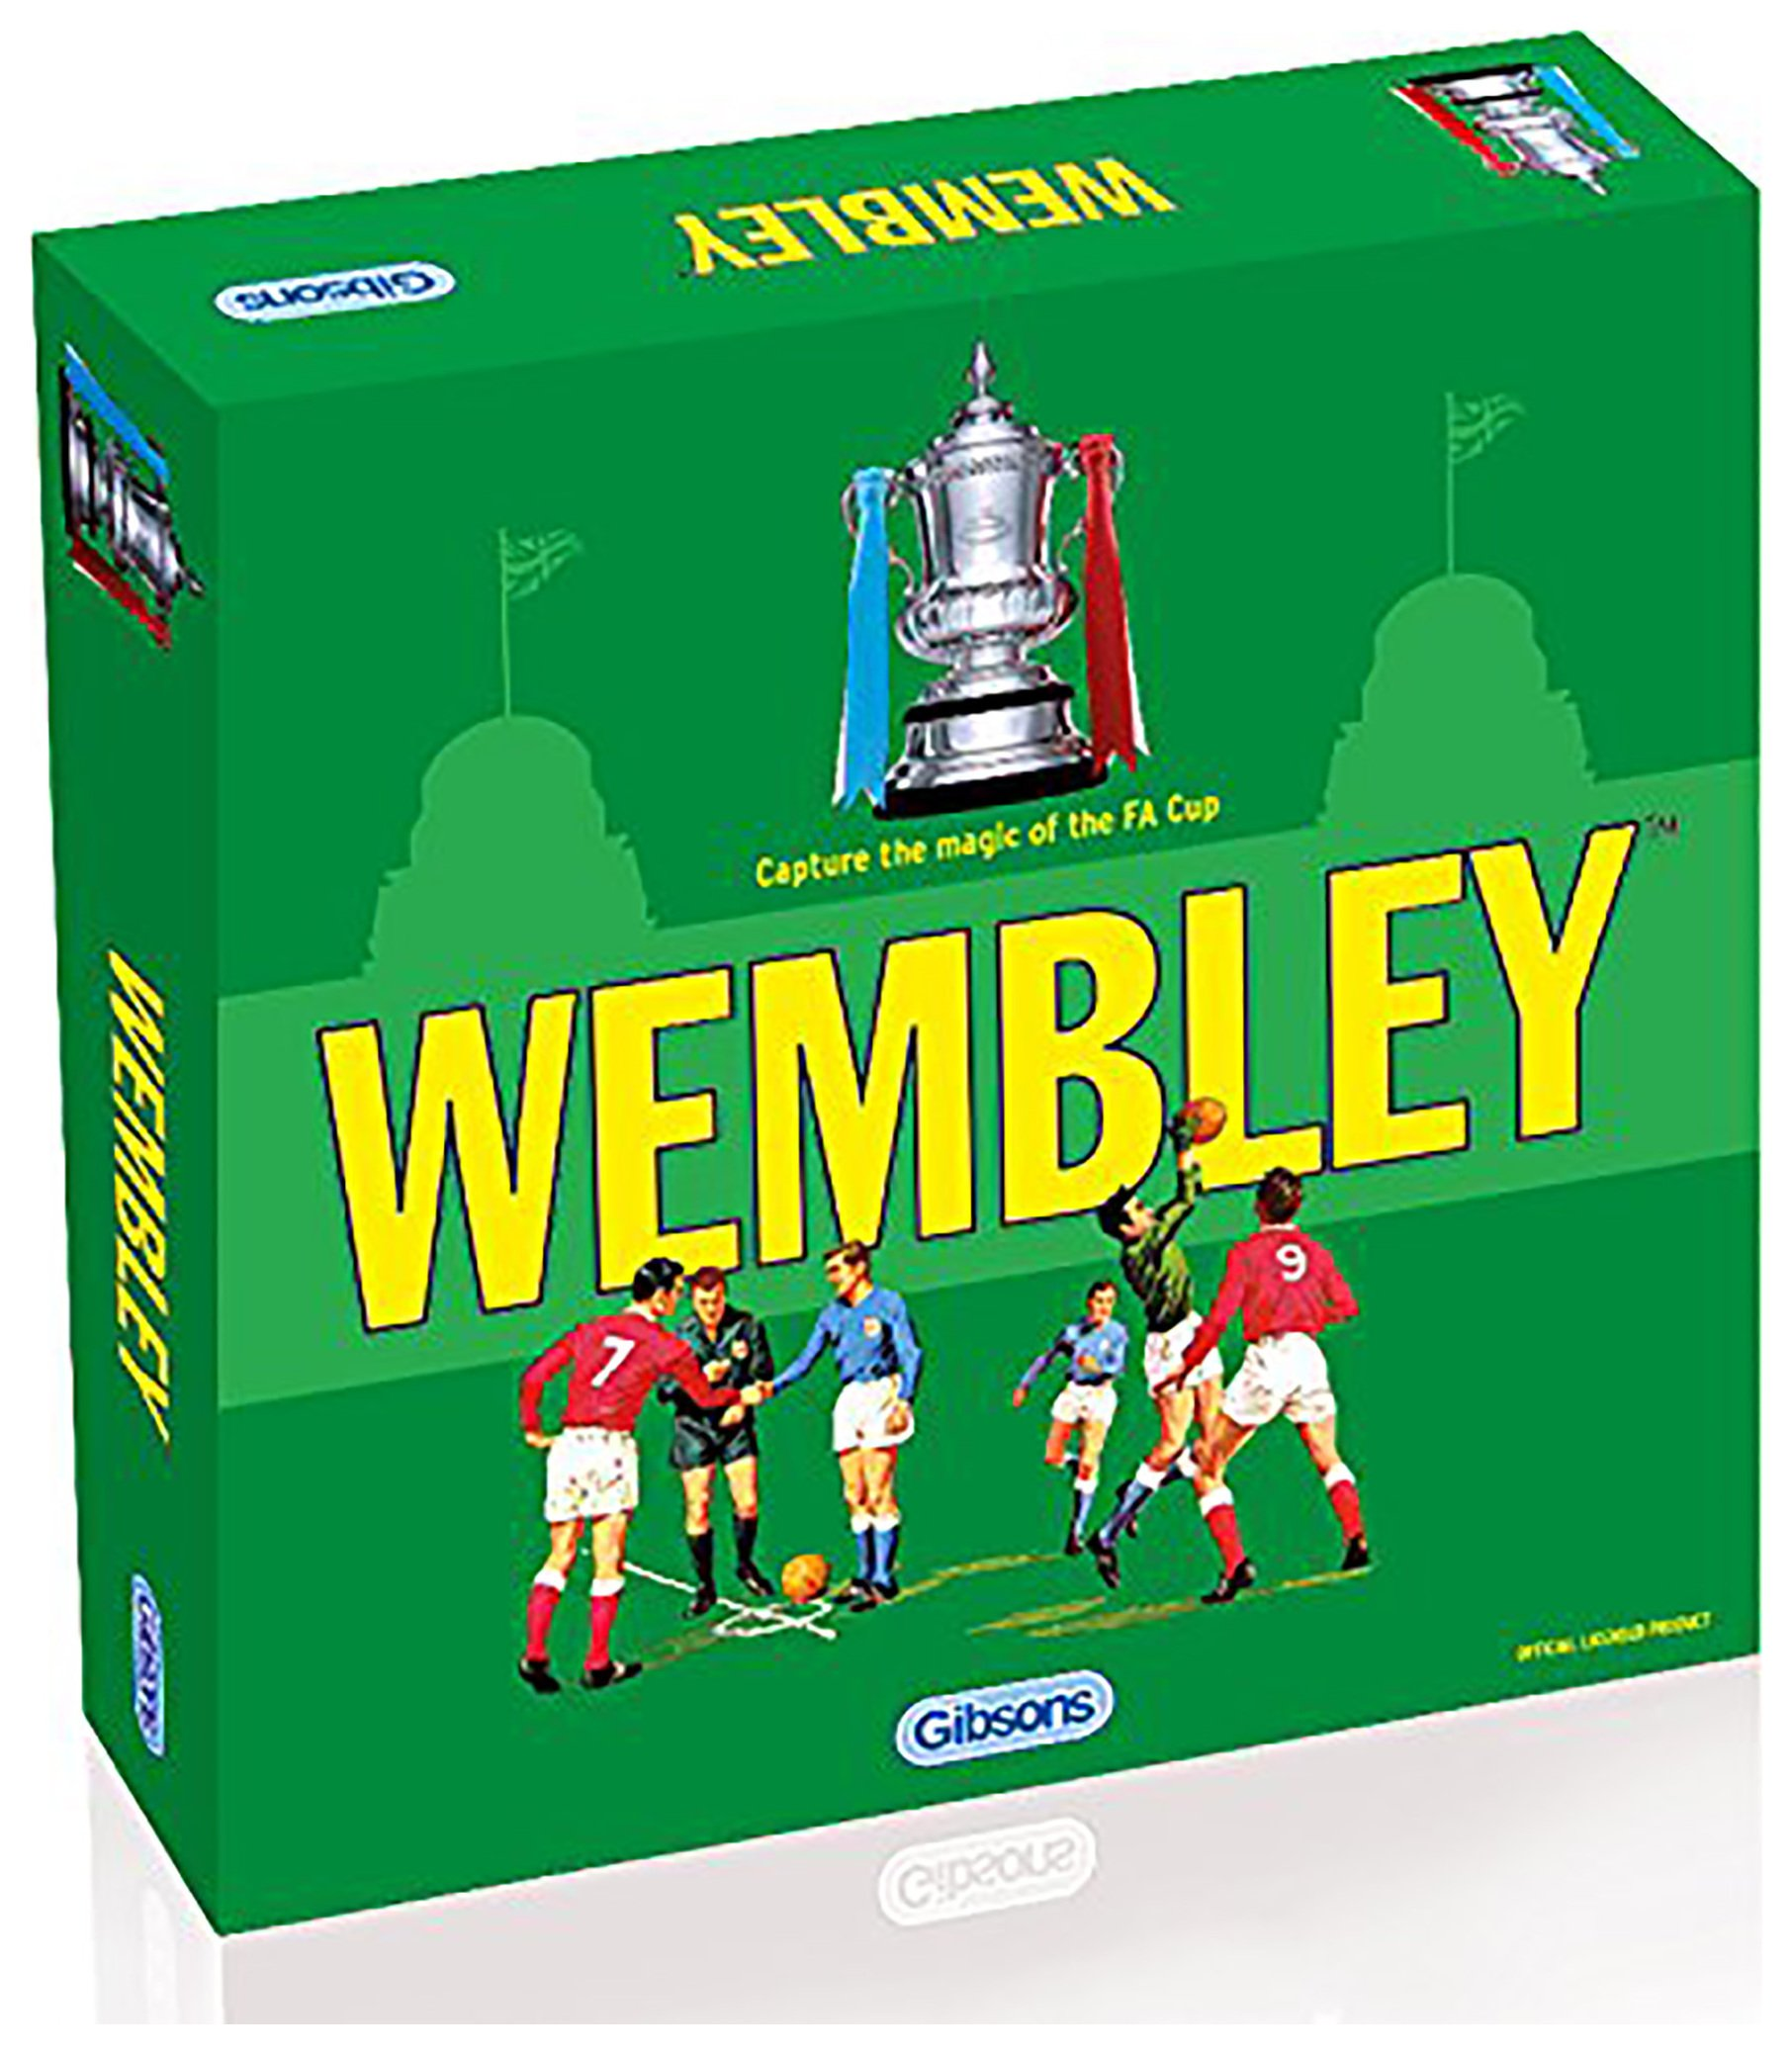 Image of Wembley Board Game.